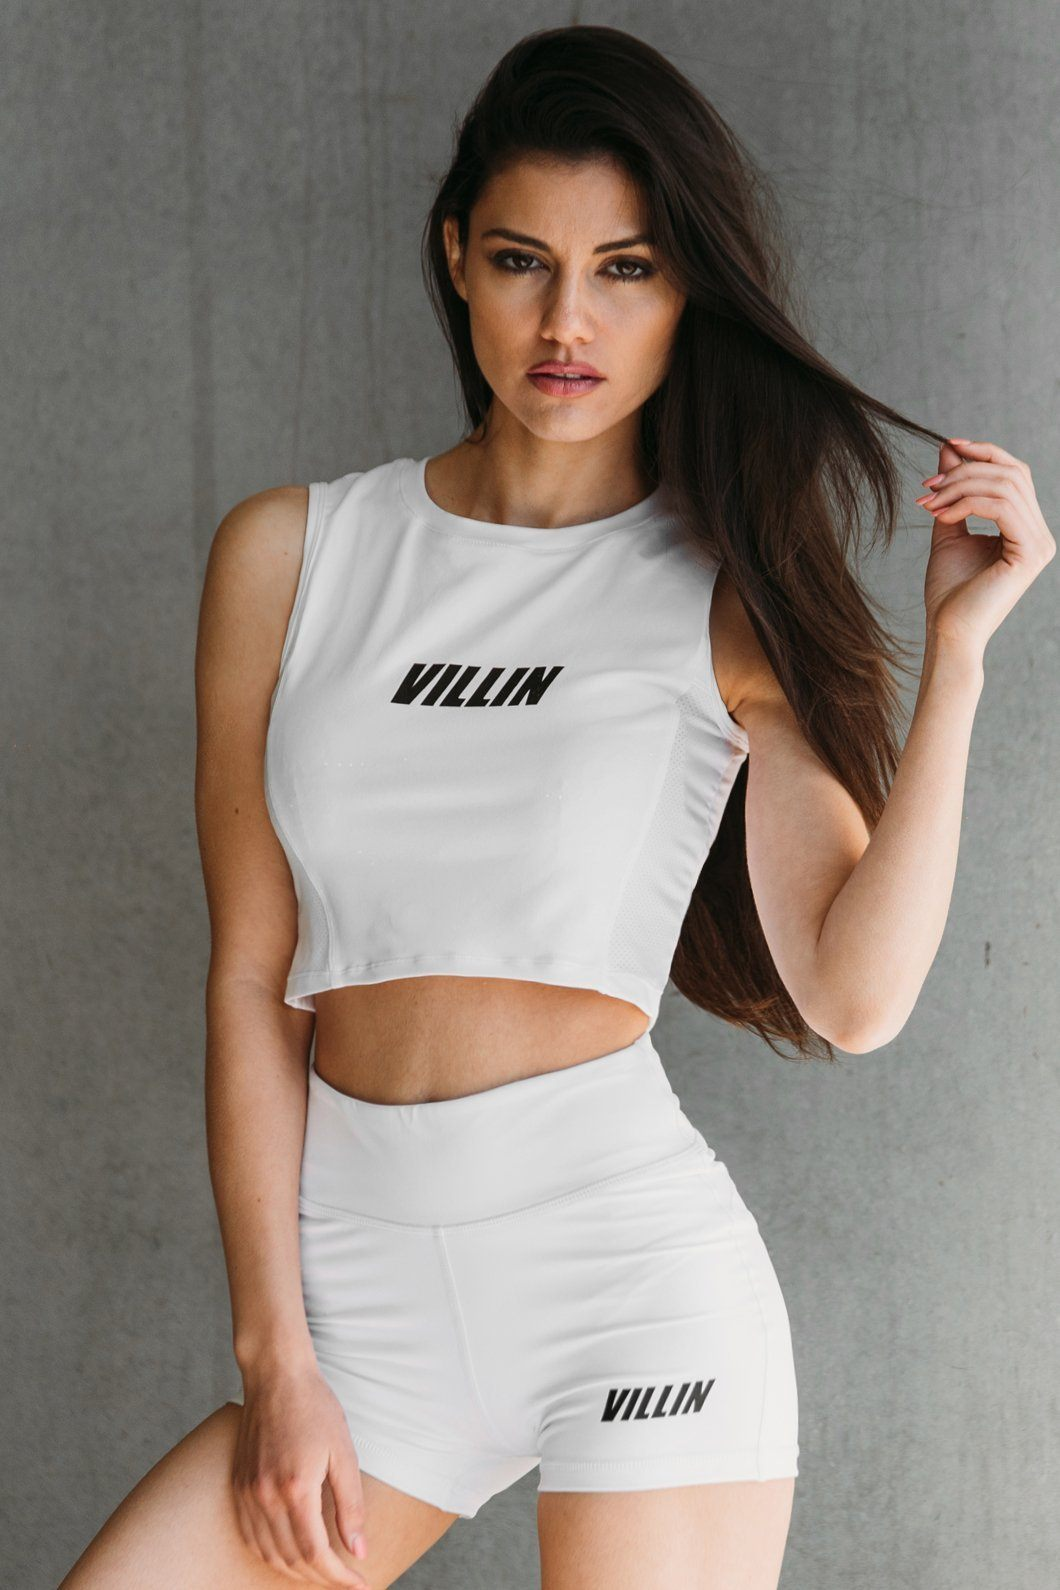 Brick City Villin Hype Crop Tank - Ice White